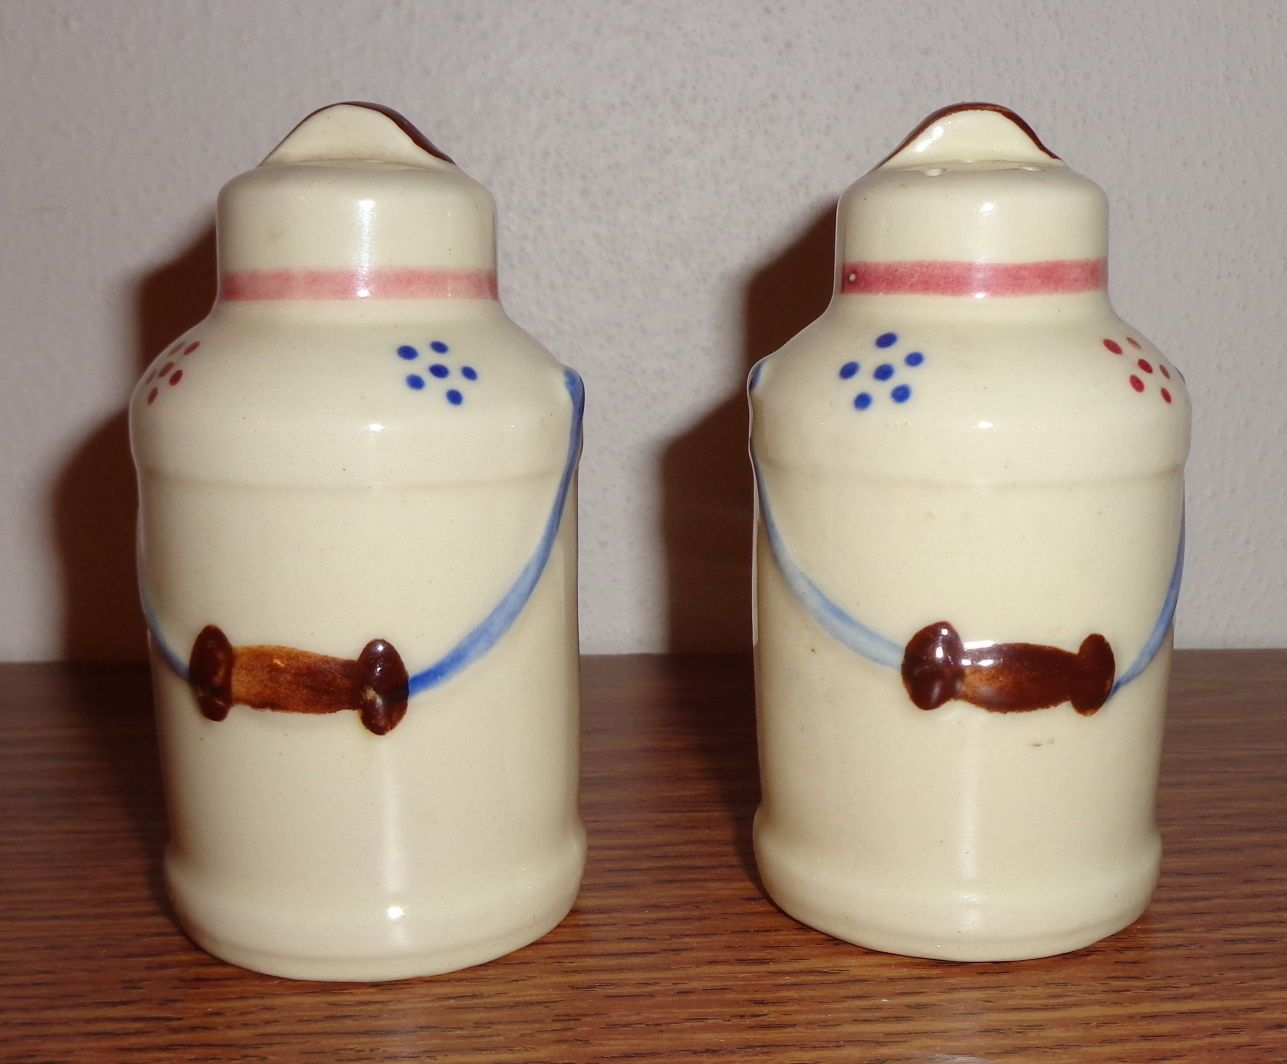 Milk Can Vntage Salt and Pepper Shakers by Ganz | eBay